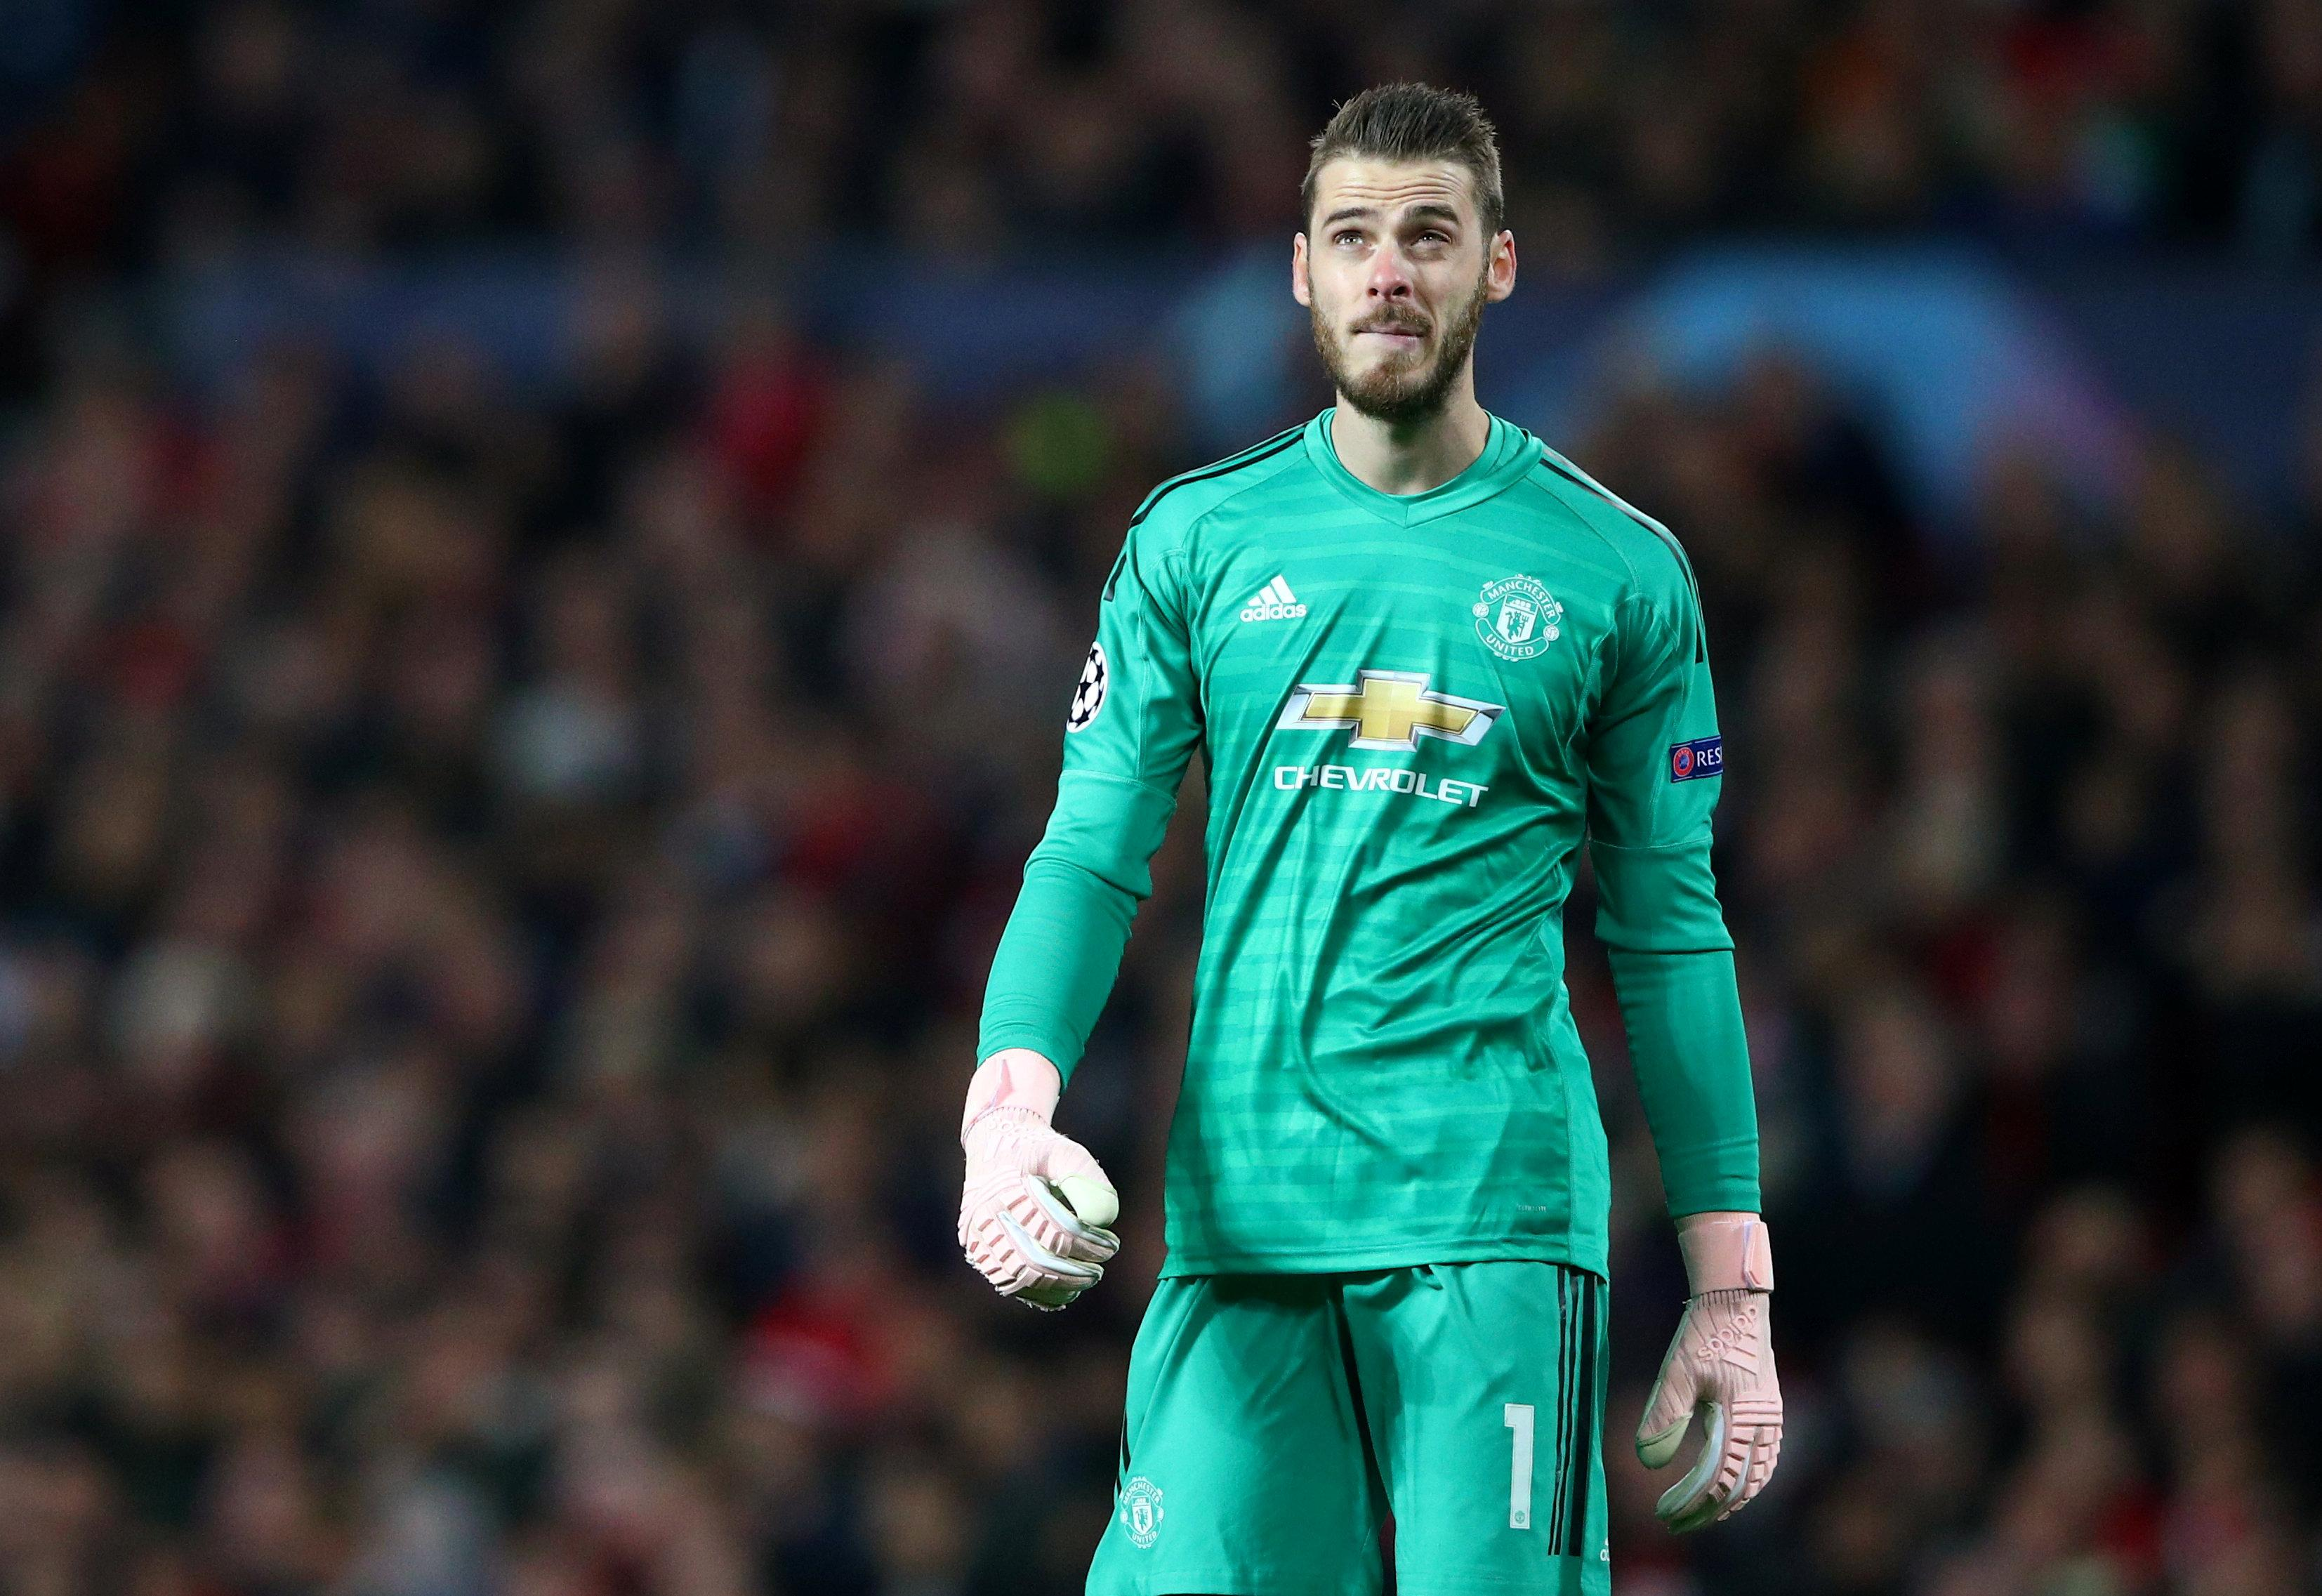 David De Gea is currently in discussions to extend his contract at Manchester United